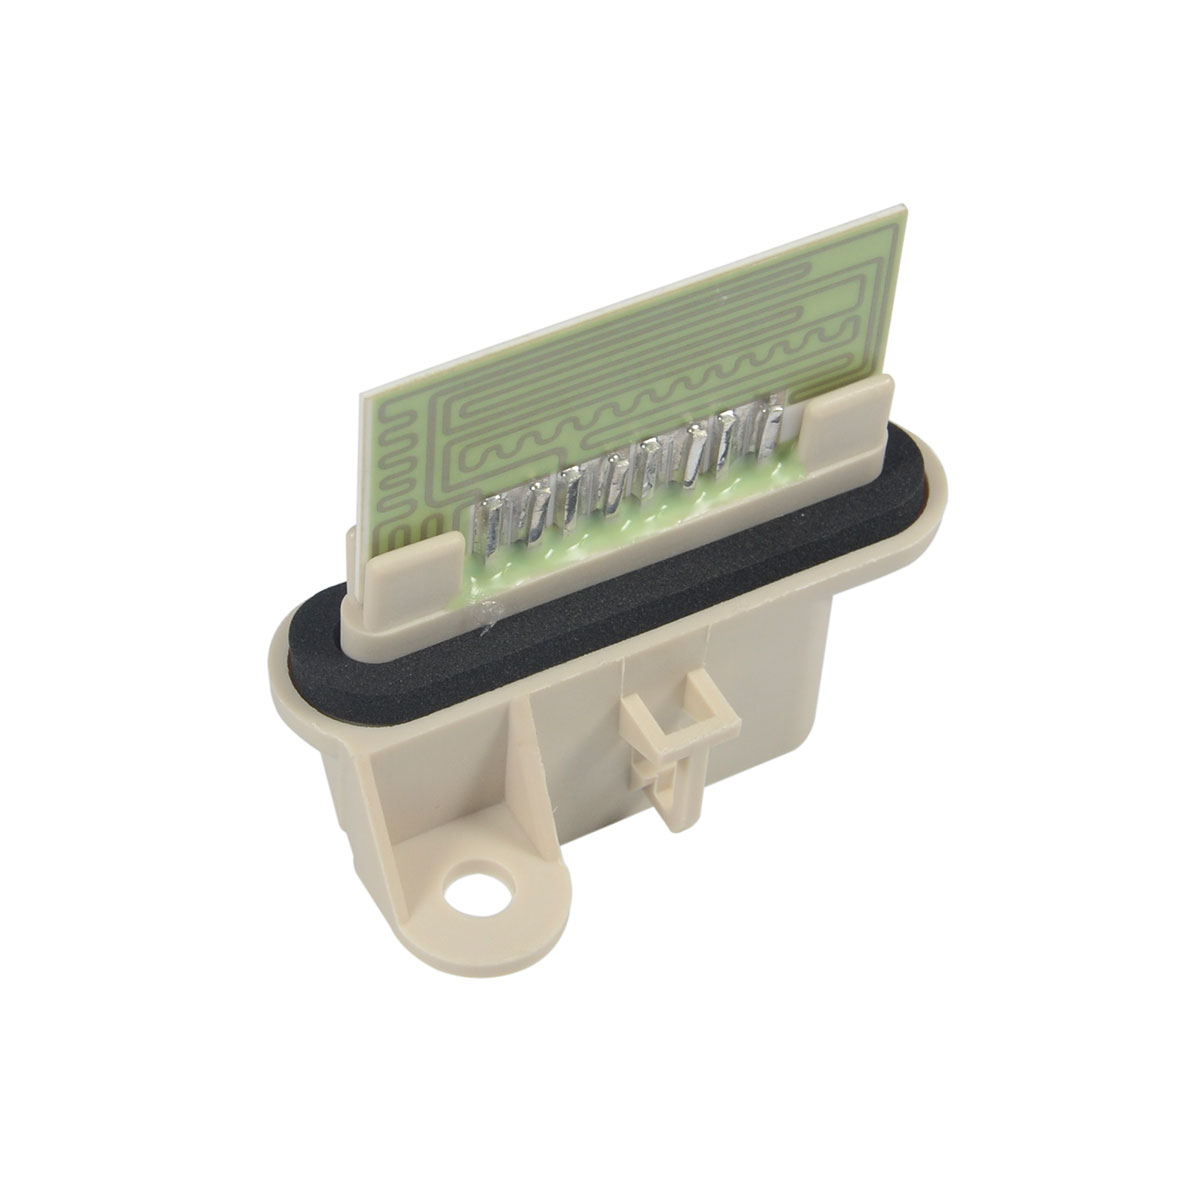 AC Heater Blower Motor Resistor for Cadillac Seville DeVille 2000 2001 2002 2003